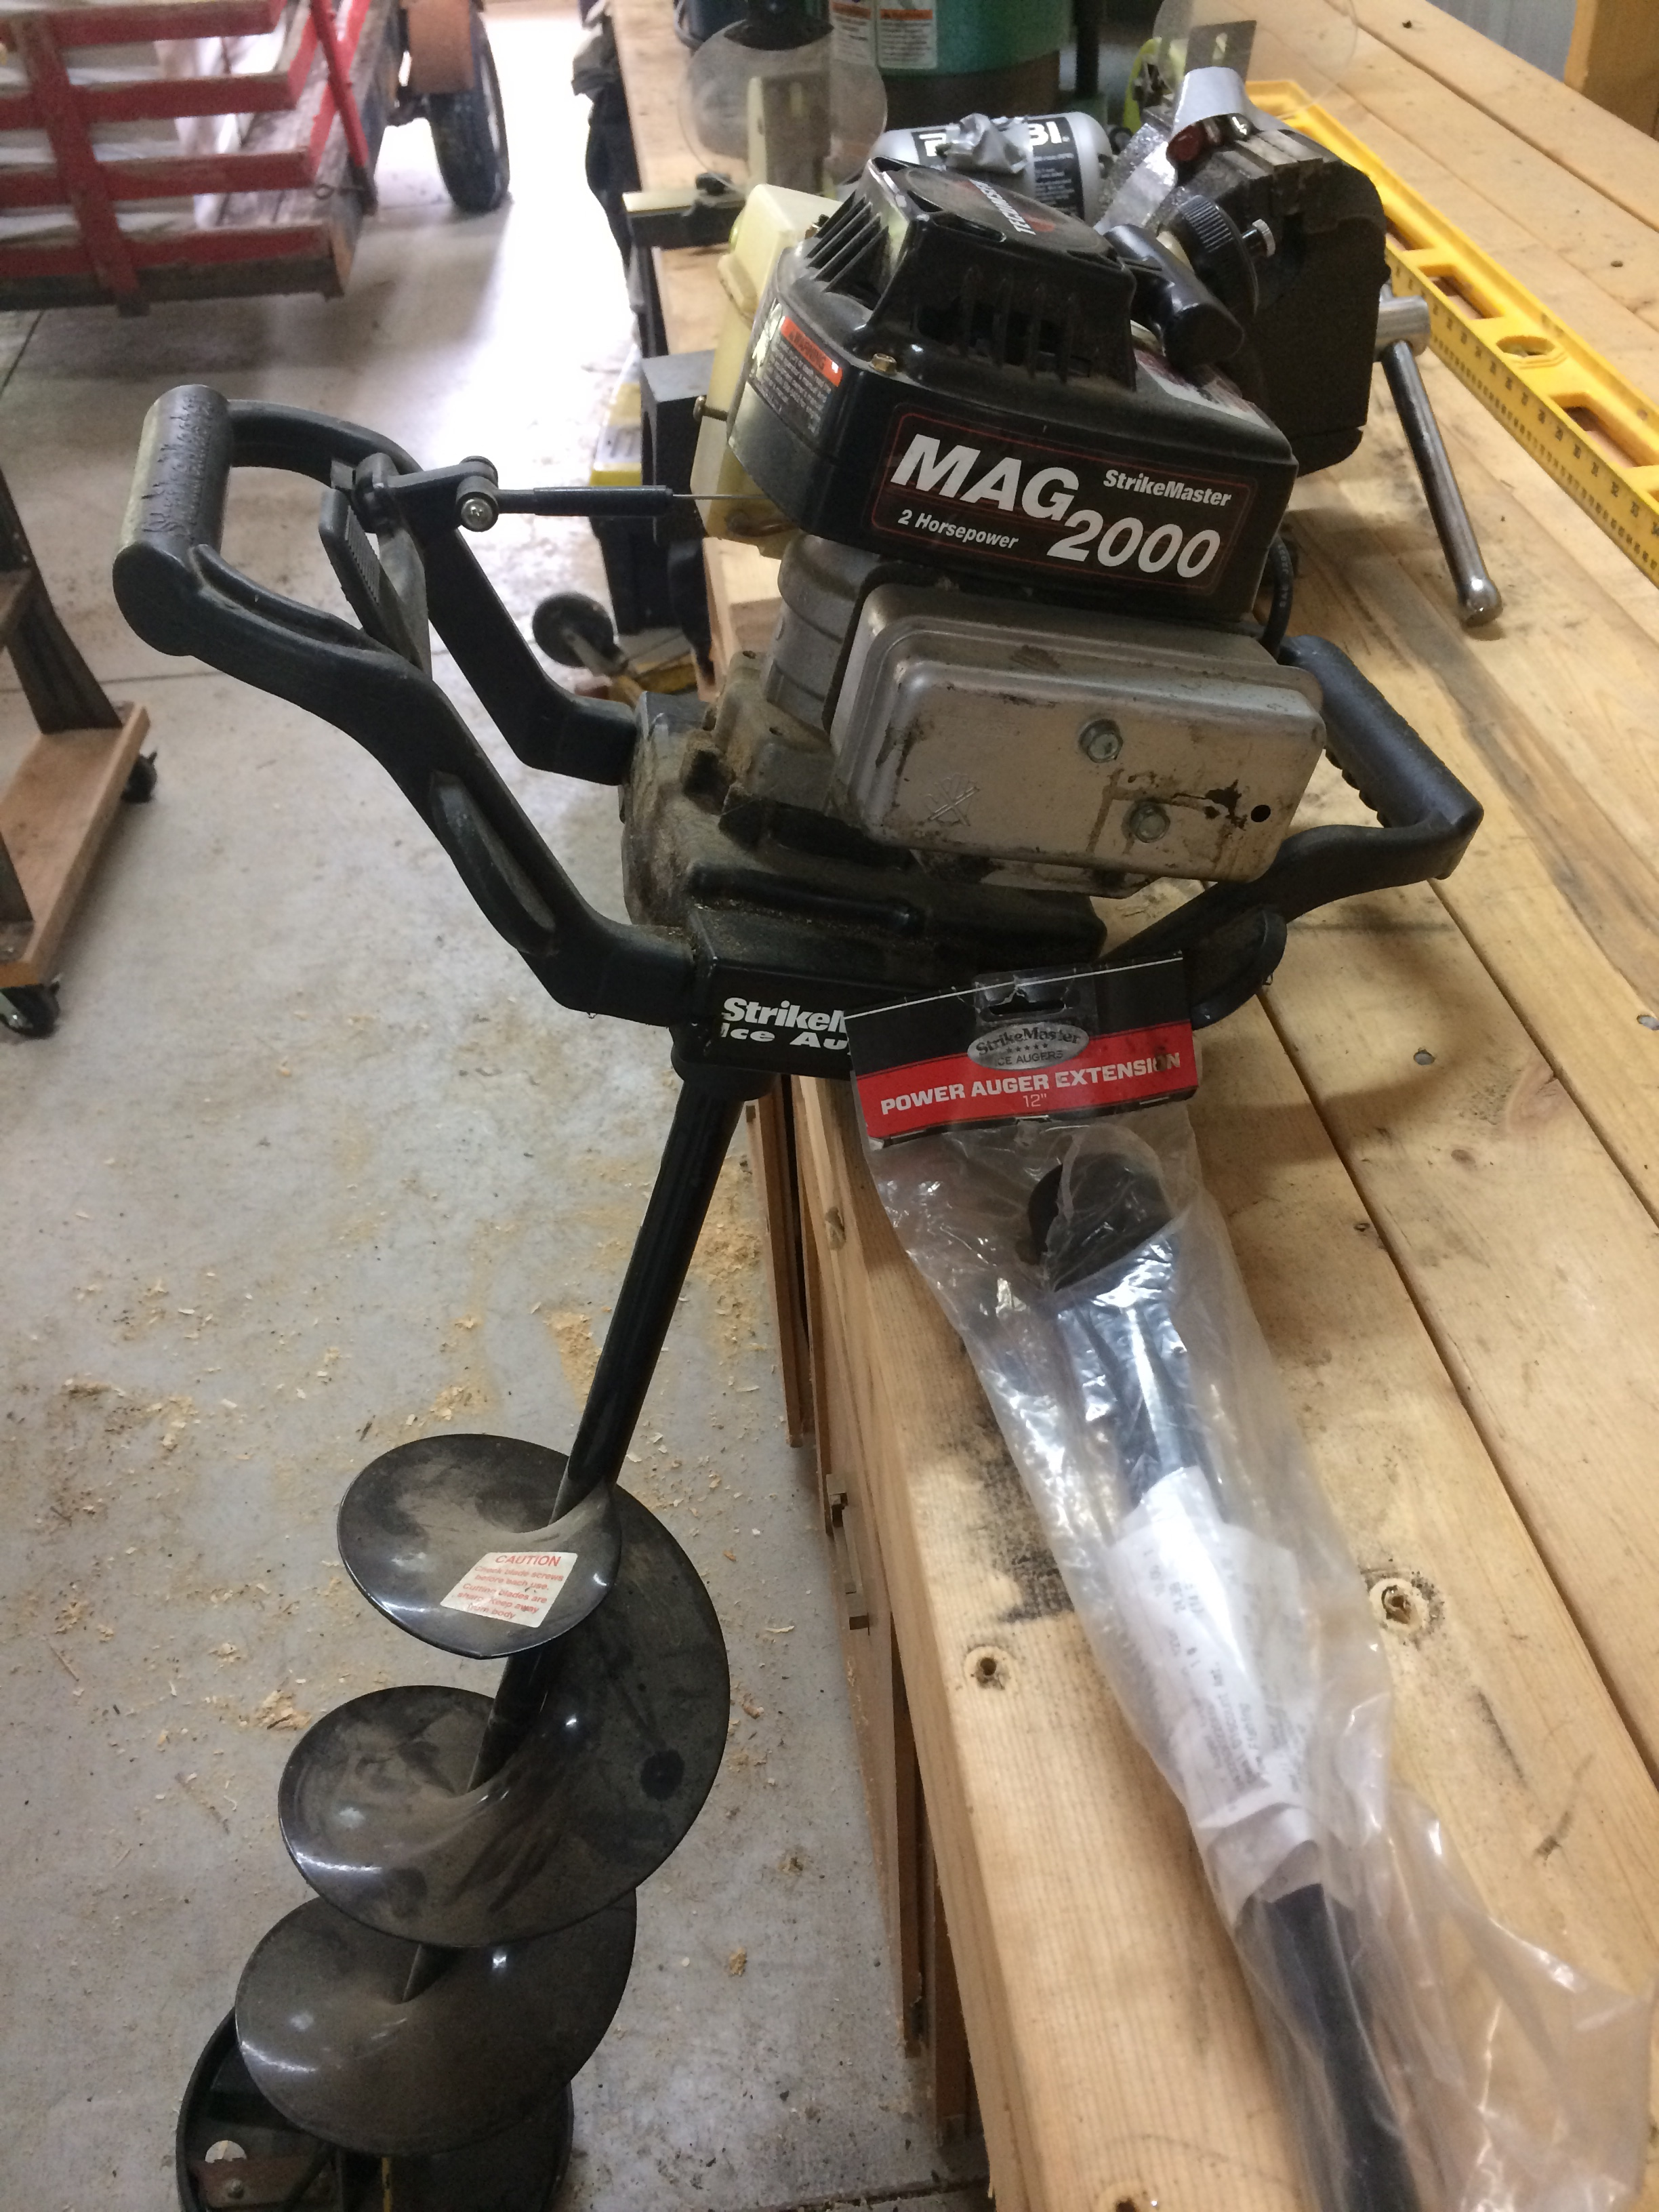 Strikemaster auger - Classifieds - Buy, Sell, Trade or Rent - Lake